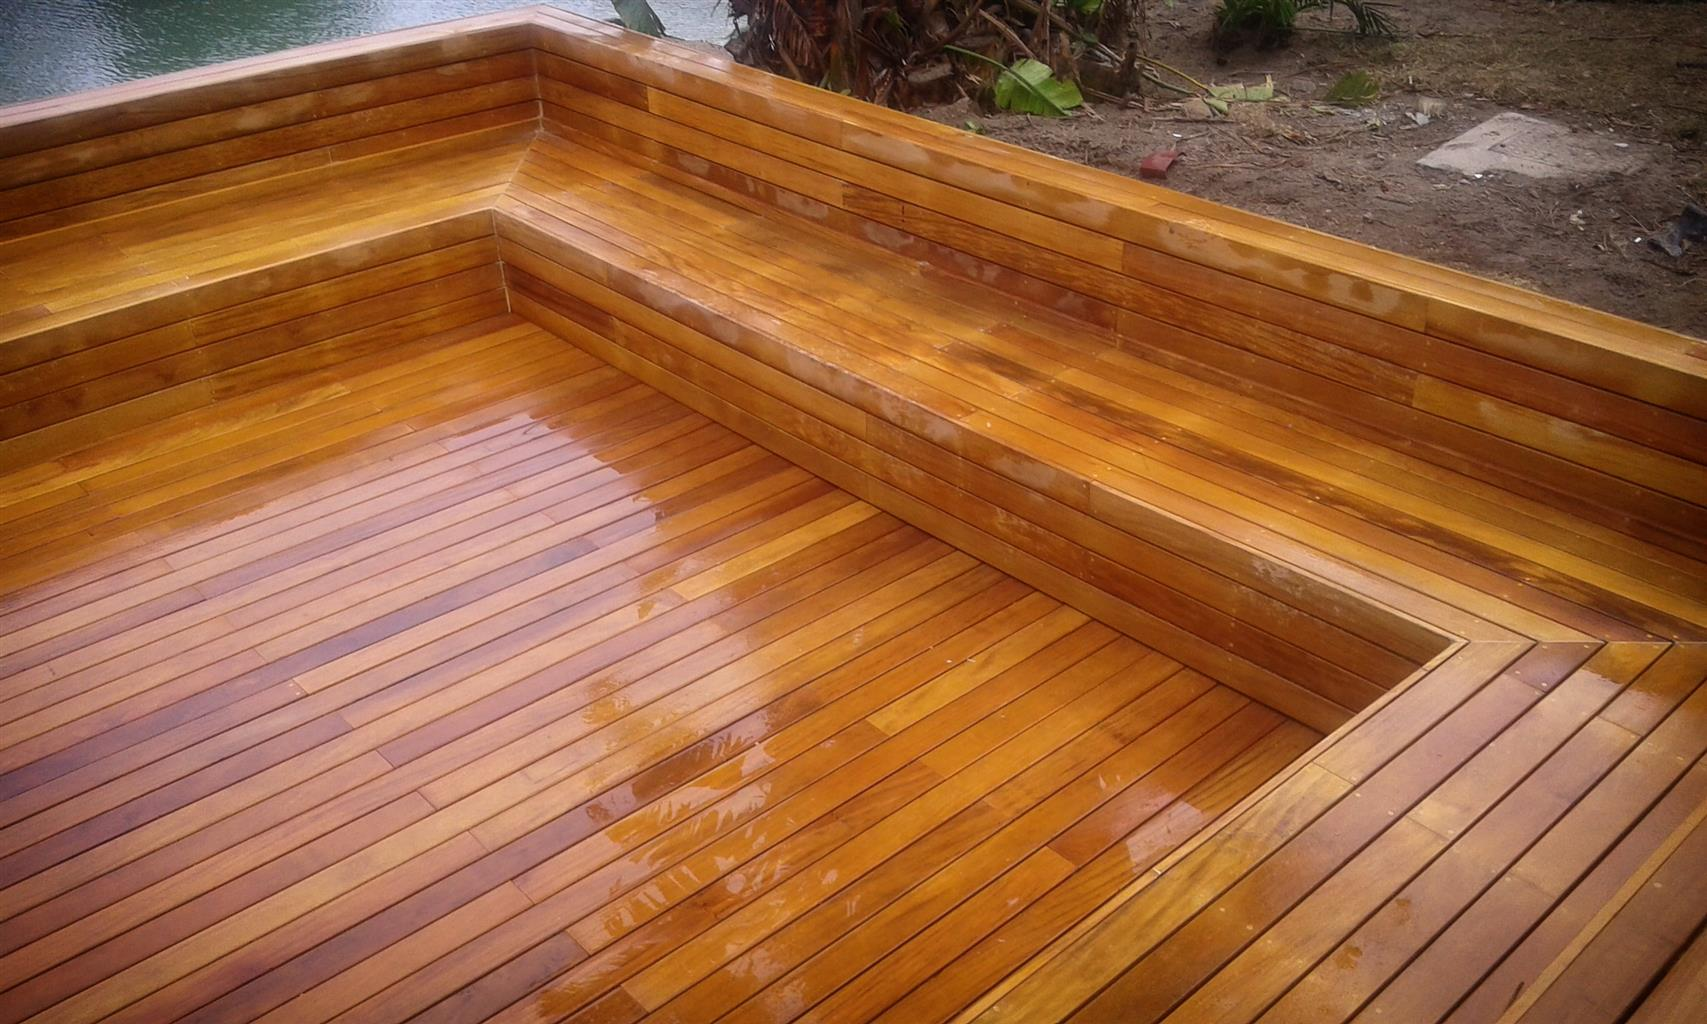 Woodworking experts